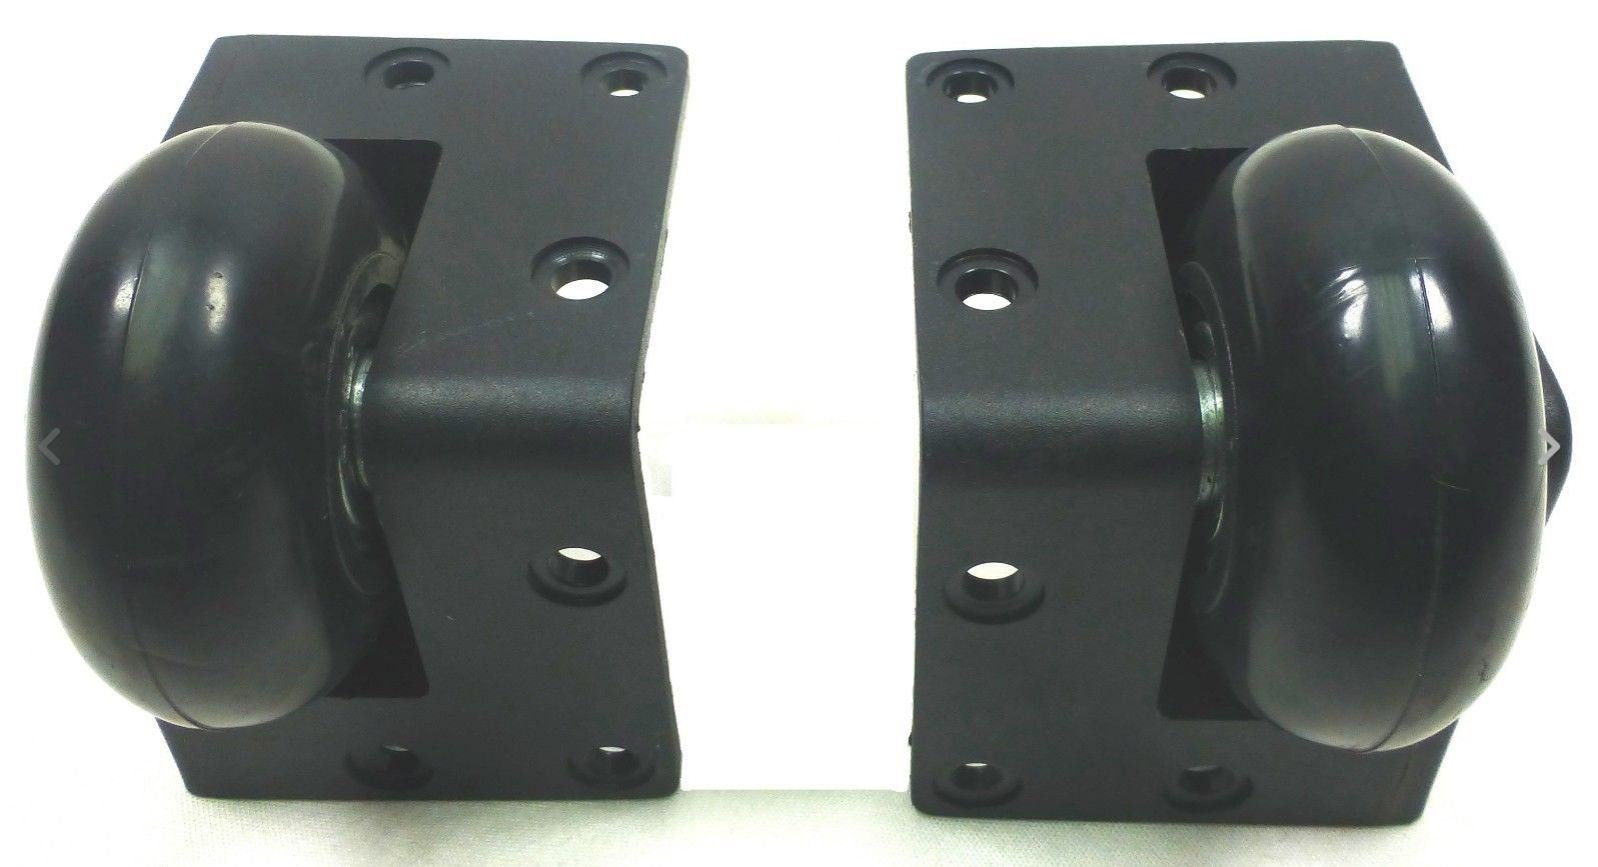 Set Of (2)Two Plastic Corner Casters w/ 2'' Dia Wheel for ATA or Euro Road Cases.